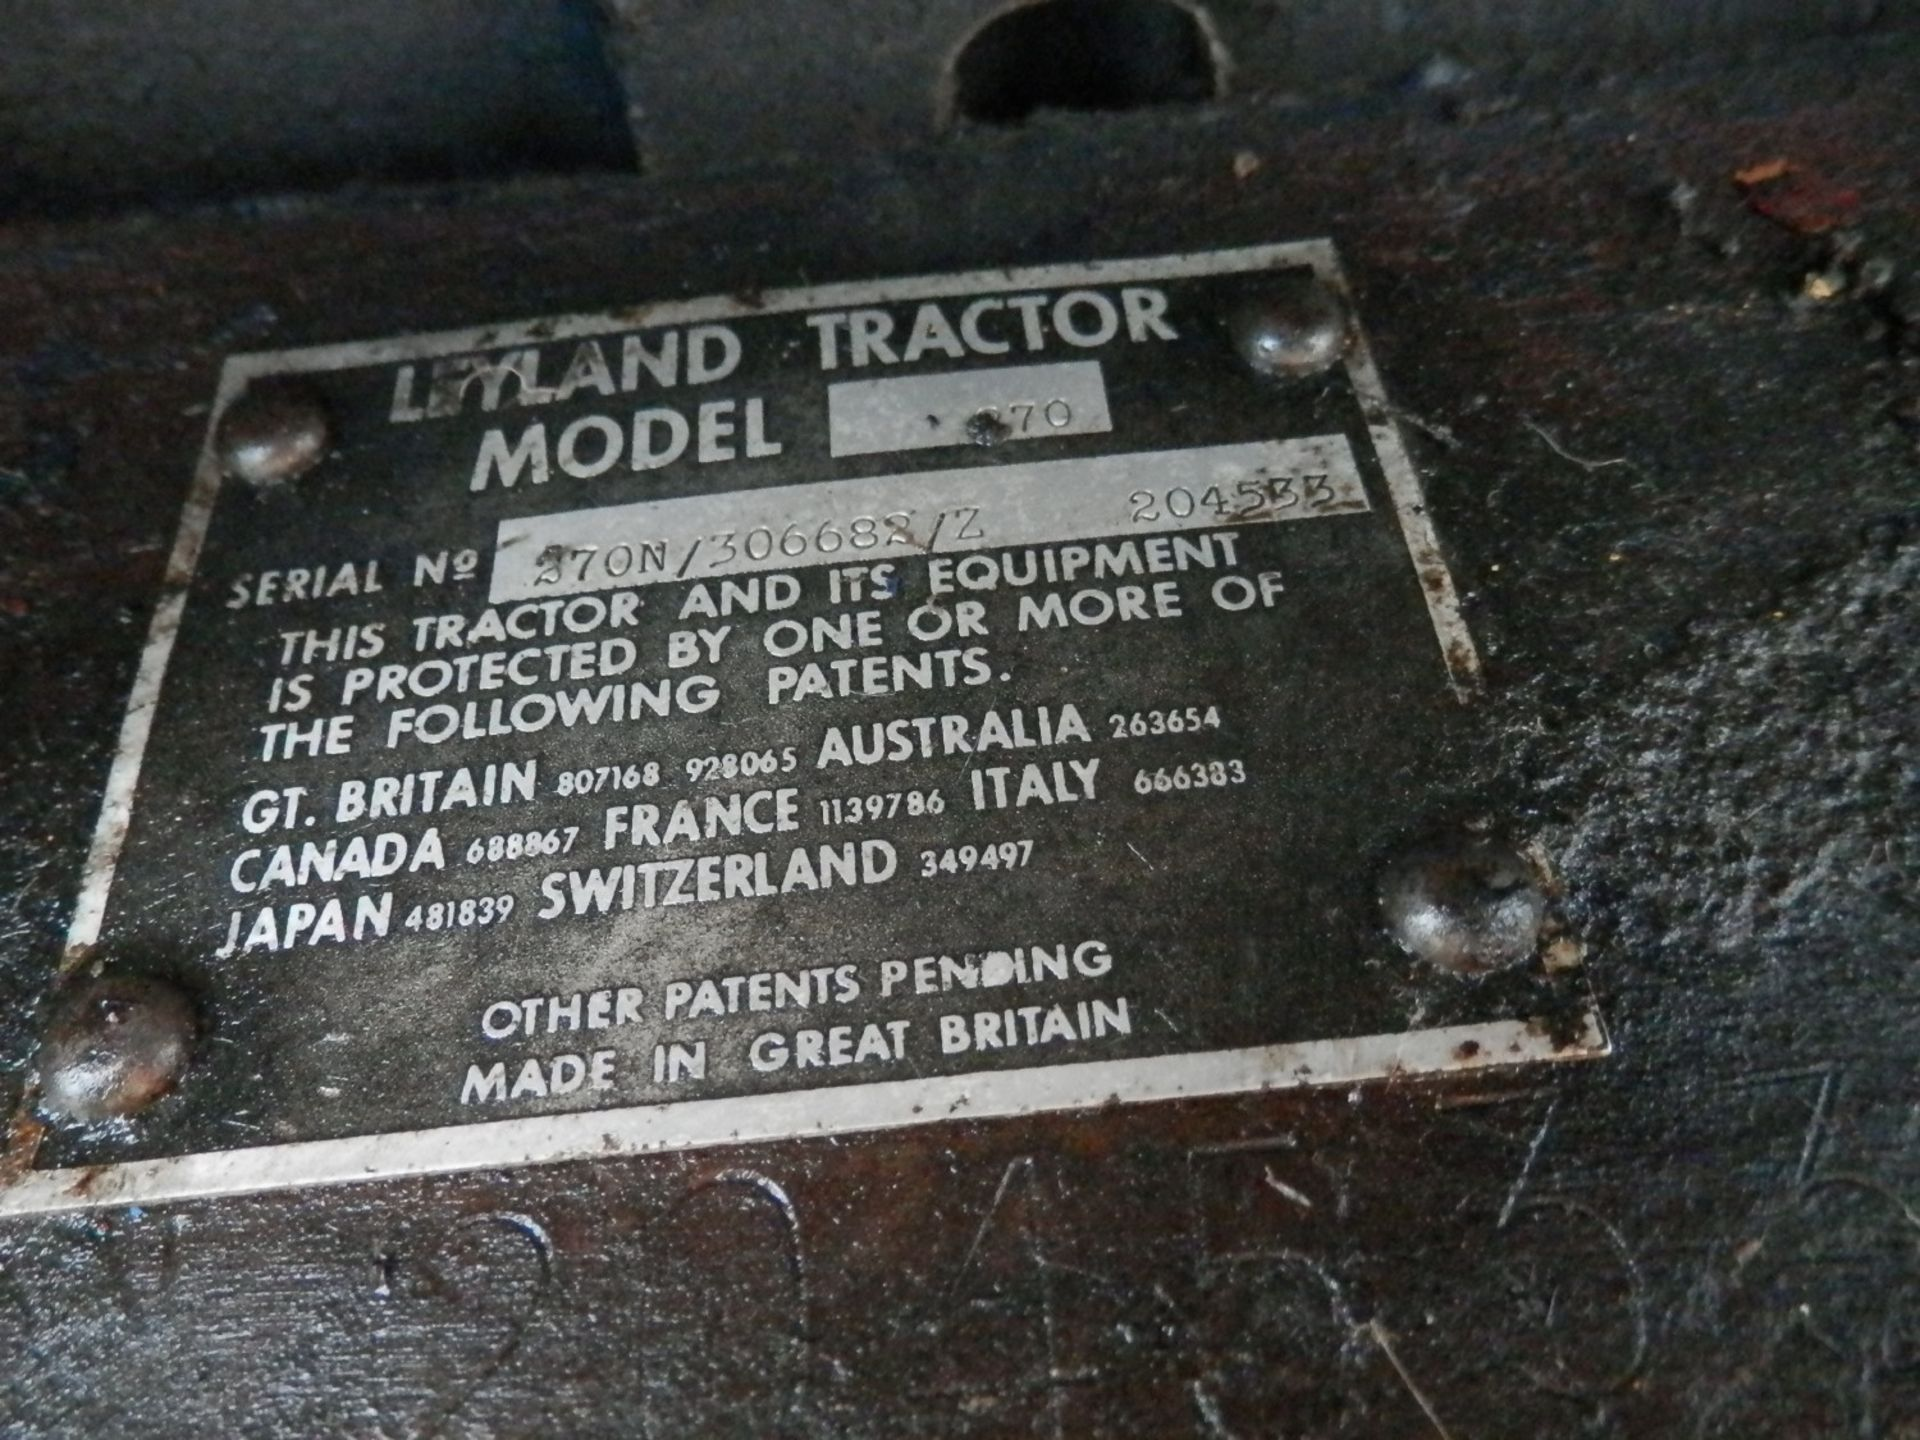 LEYLAND 270 DSL. TRACTOR - Image 8 of 8